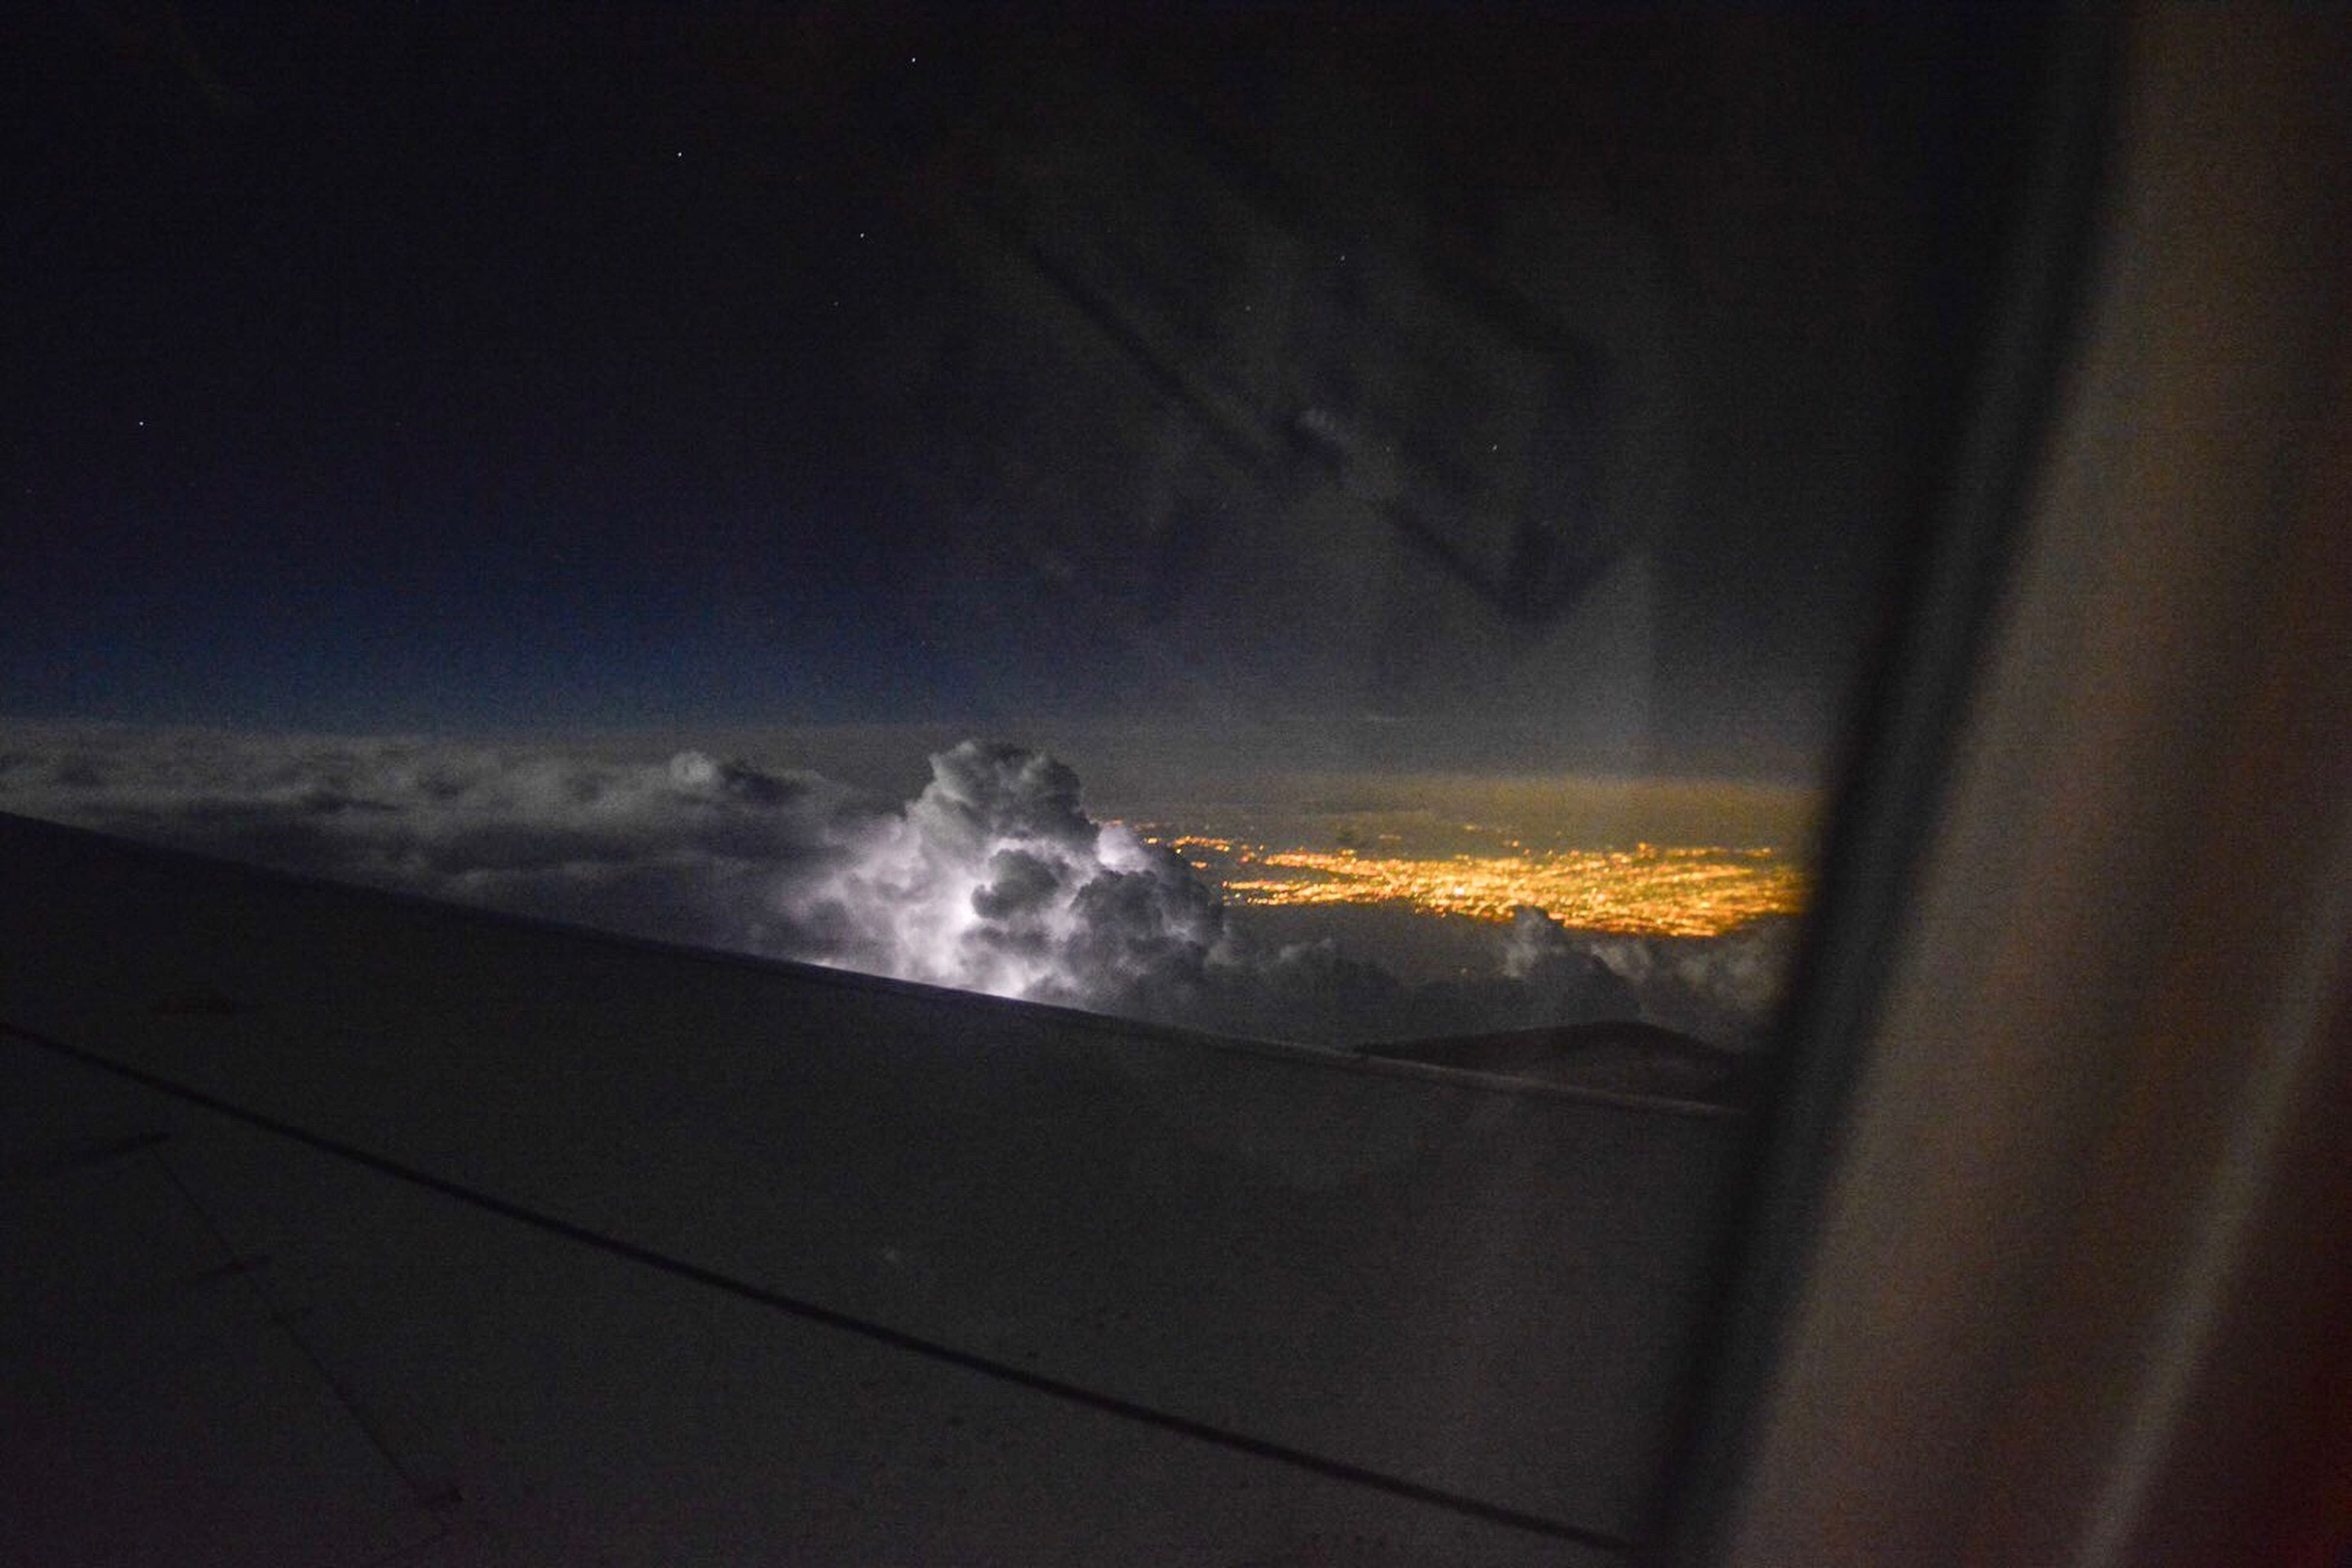 nature, no people, beauty in nature, sky, cloud - sky, sunset, airplane, scenics, outdoors, night, airplane wing, astronomy